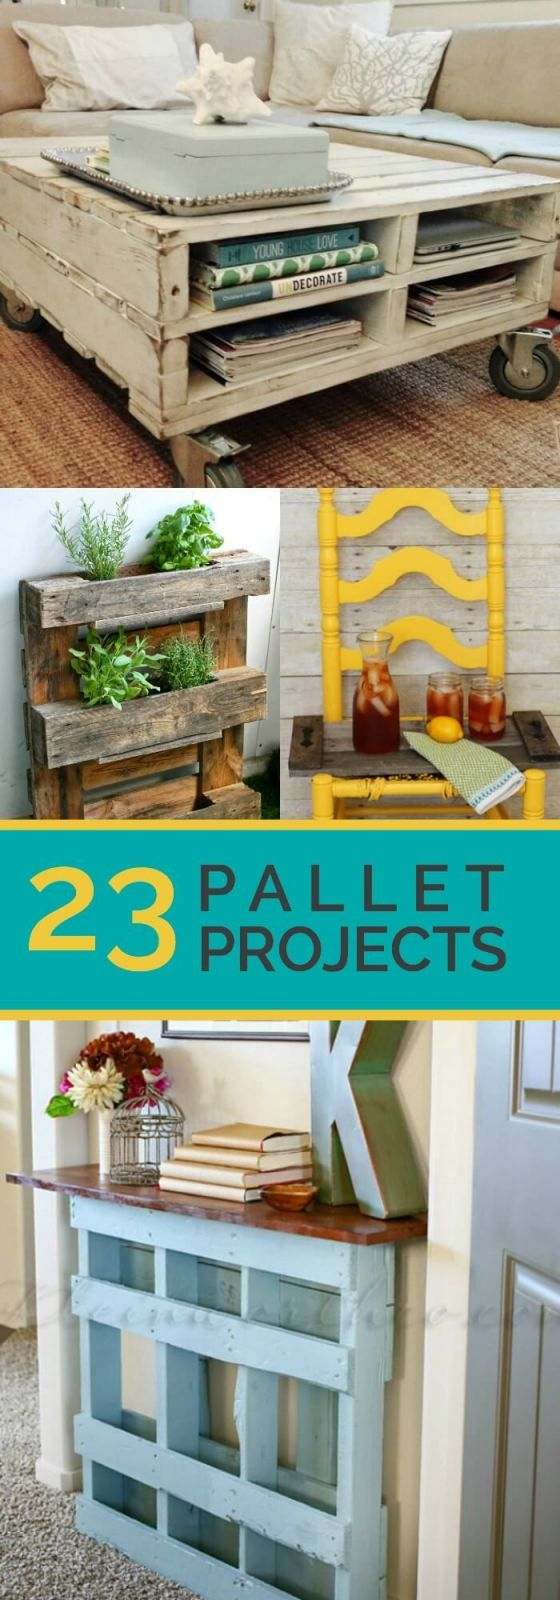 Fantastic diy pallets ideas